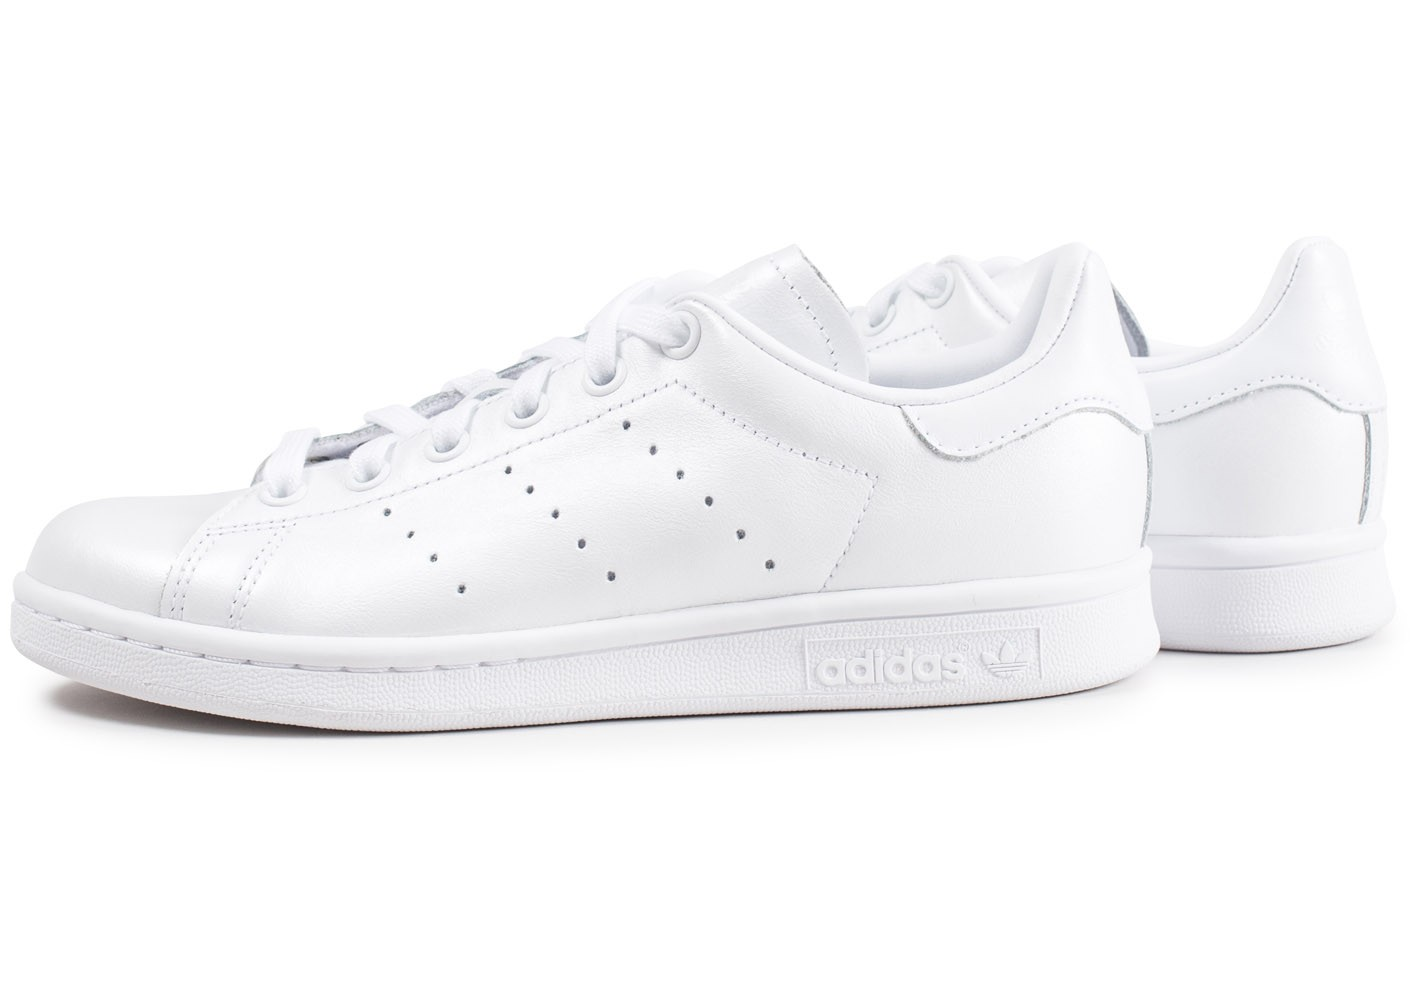 adidas Stan Smith triple blanc shinny femme - Chaussures ...